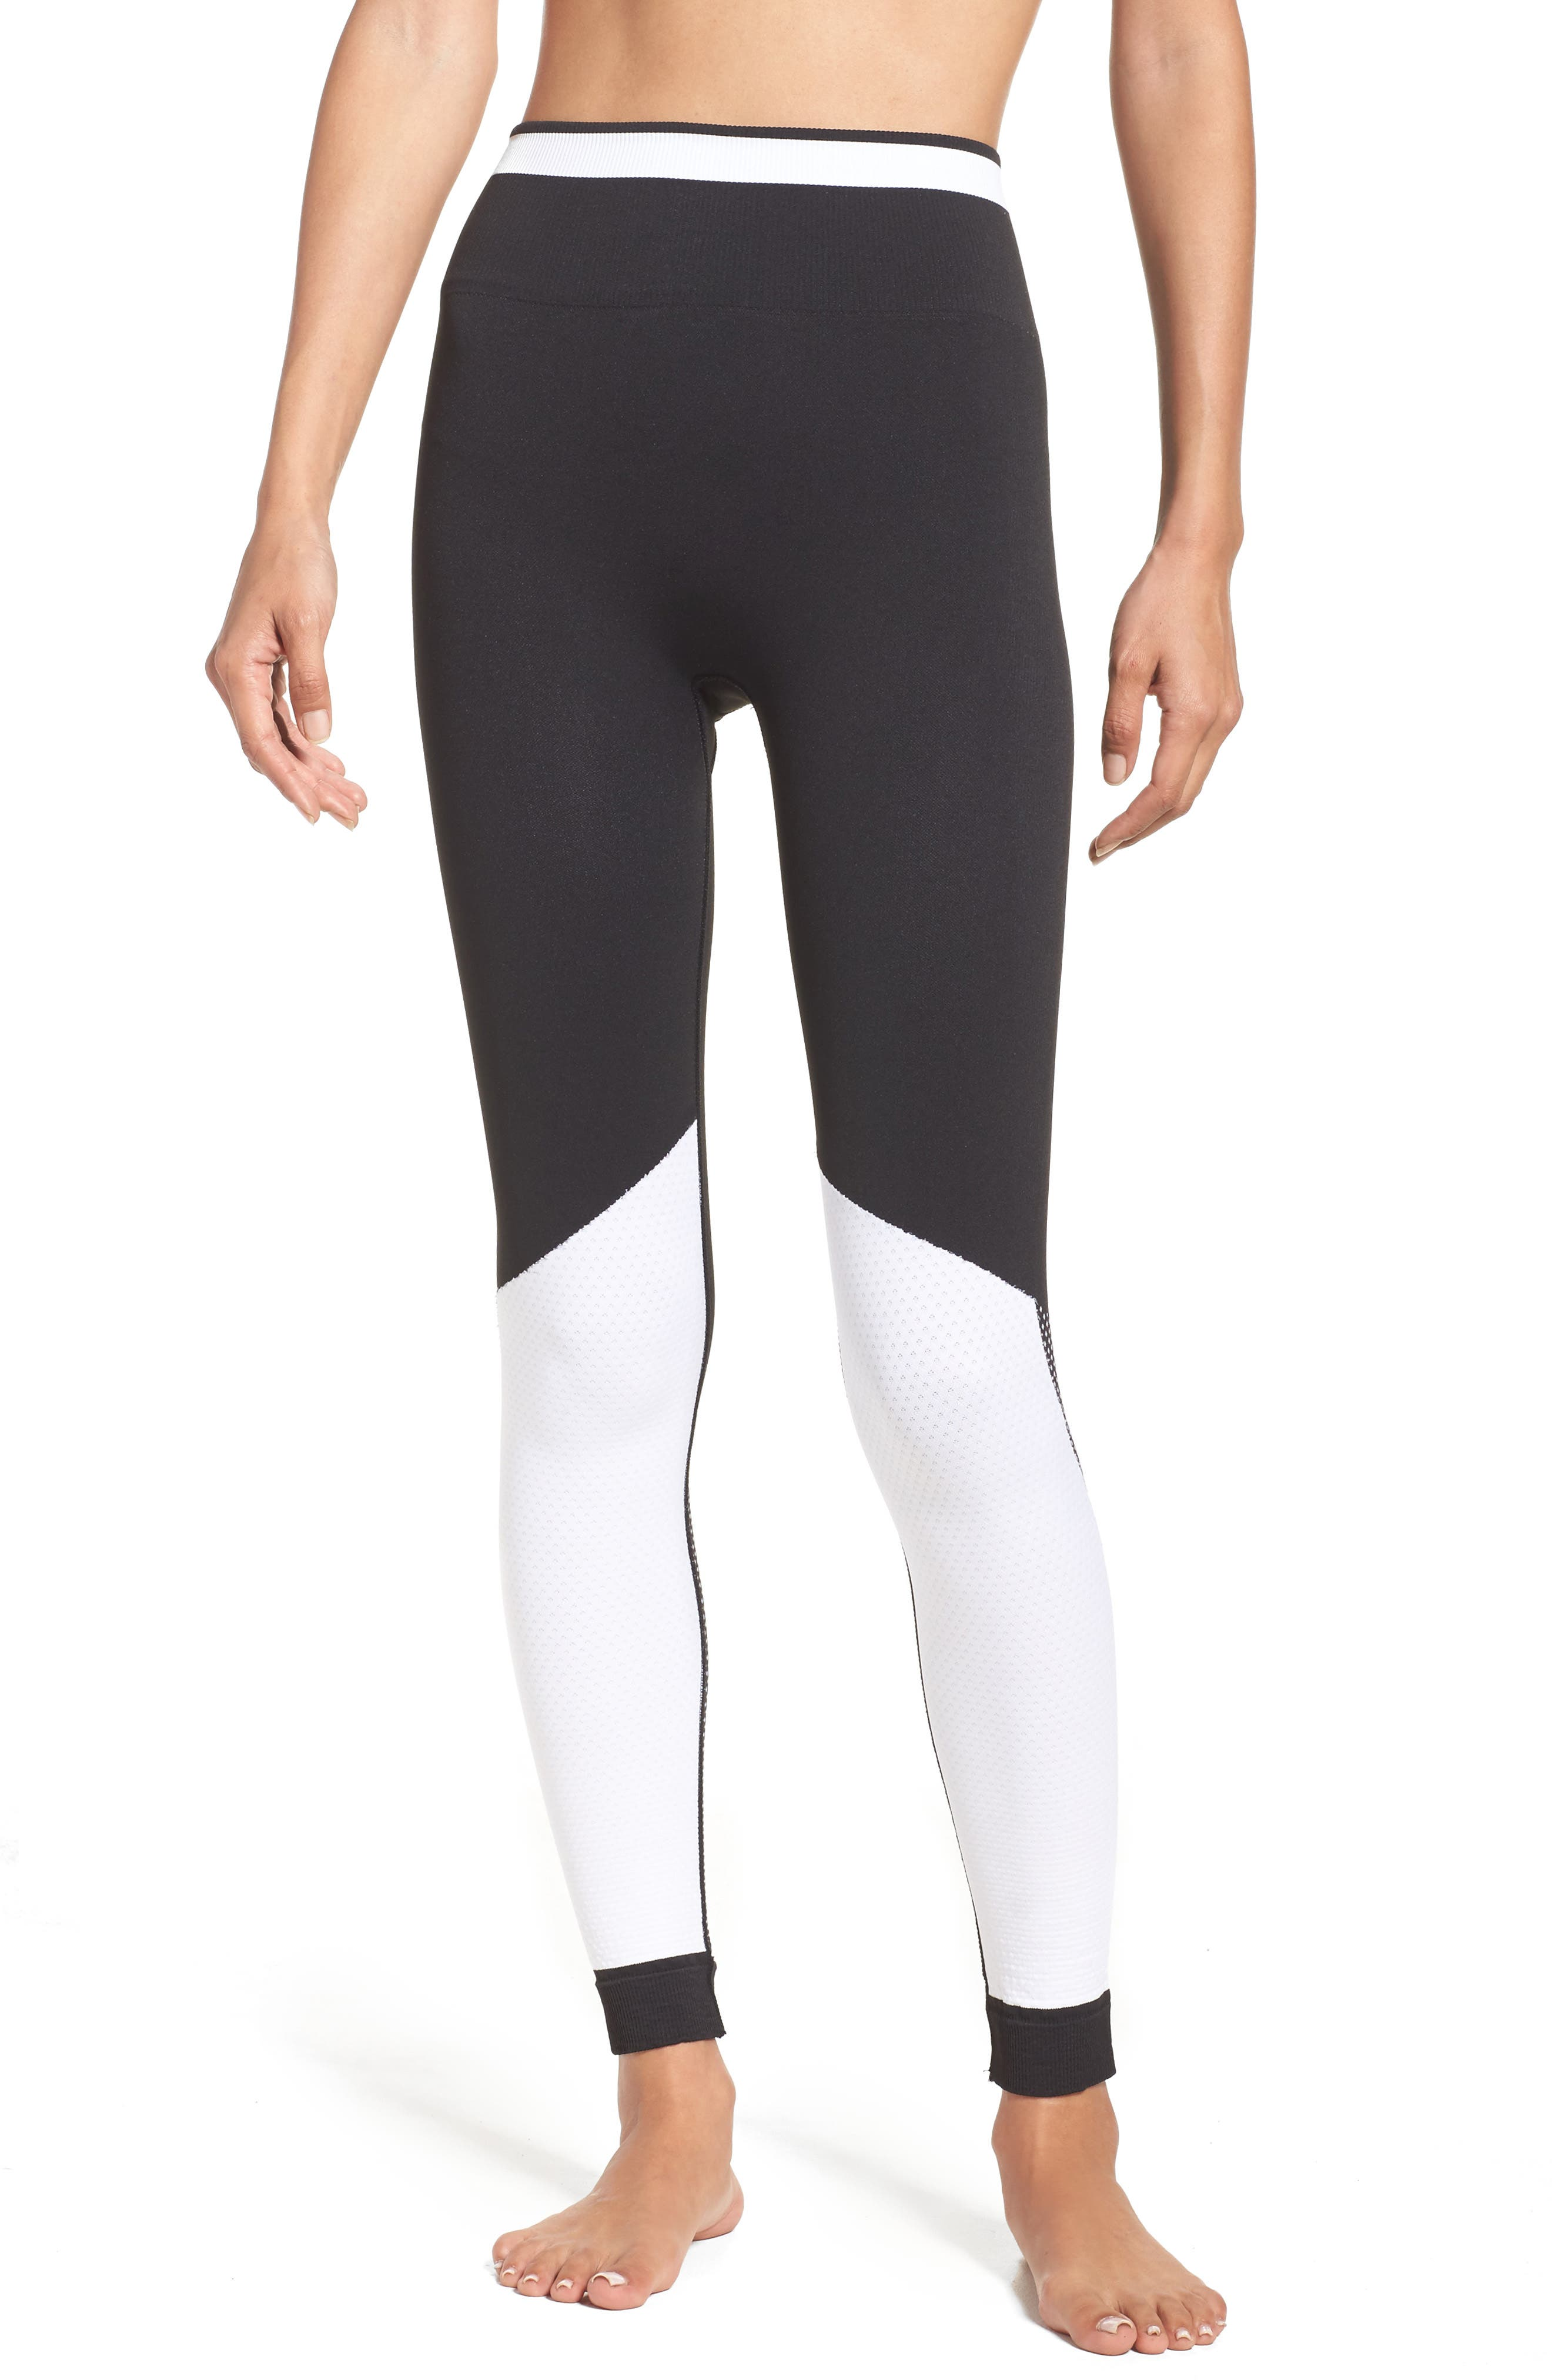 Ace Performance Tights,                         Main,                         color,